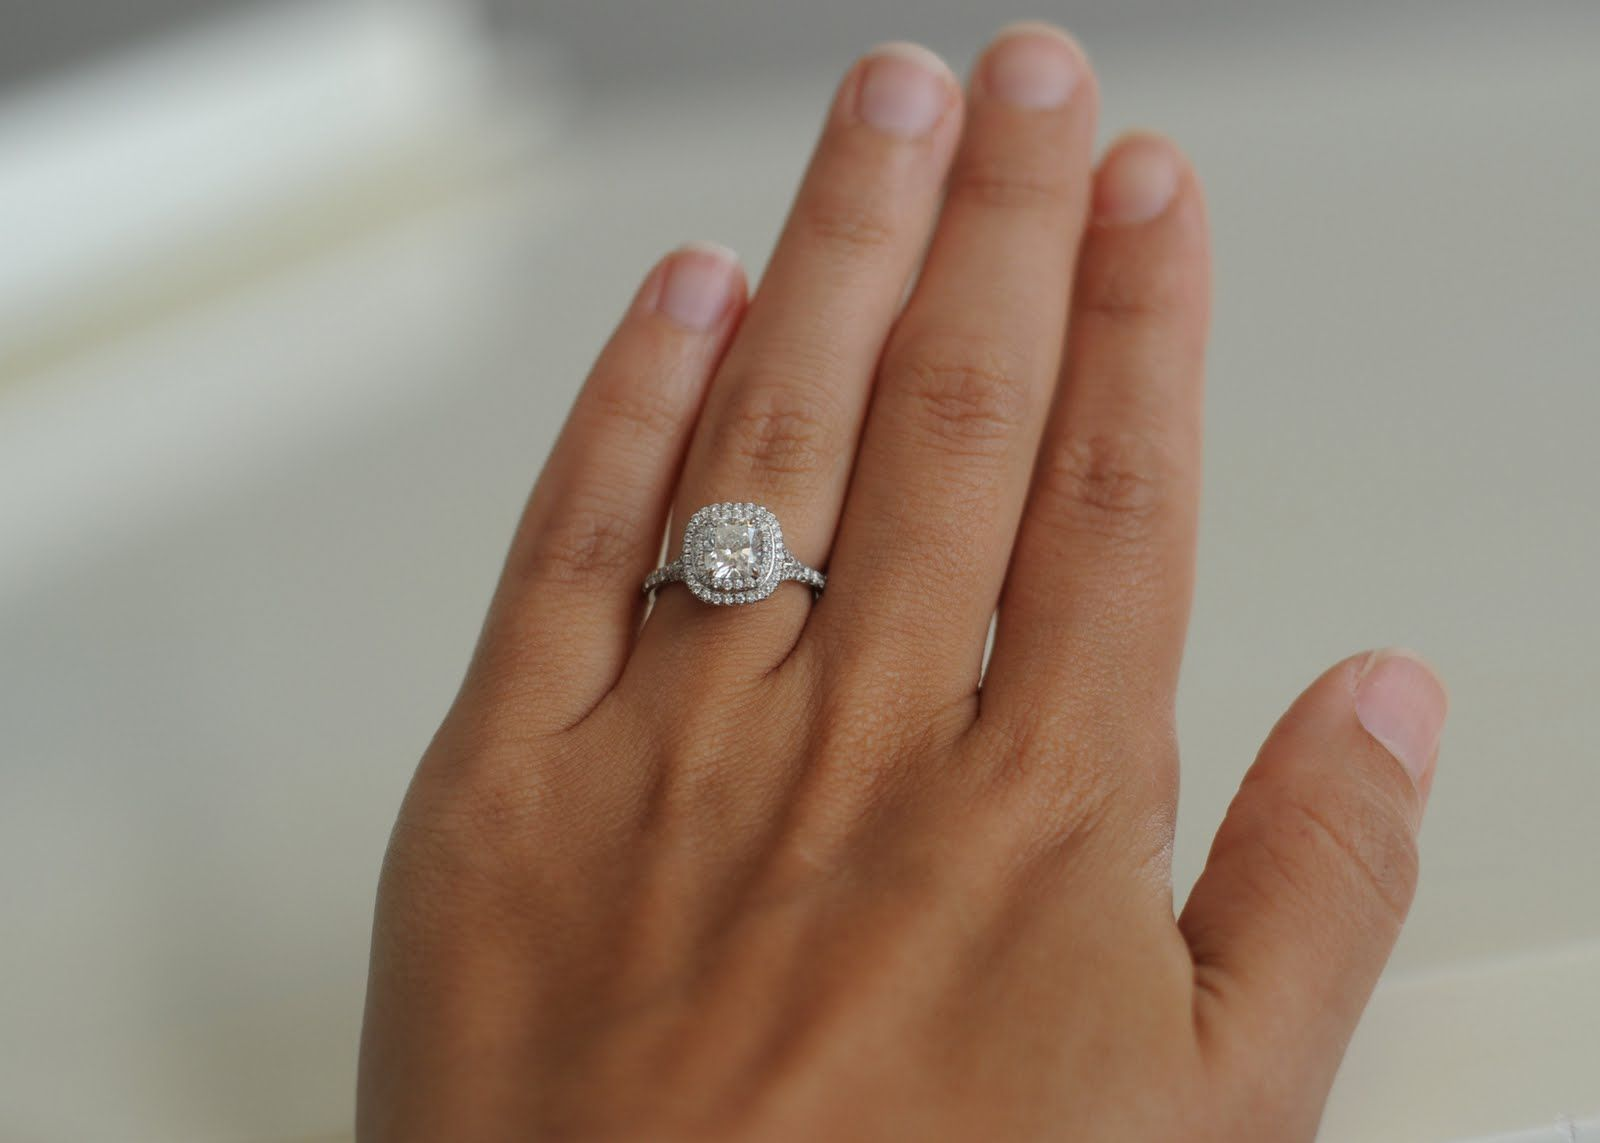 Engagement ring tiffany on hand  Tiffany Soleste E-Ring. I tried this beauty on in July when I went ...